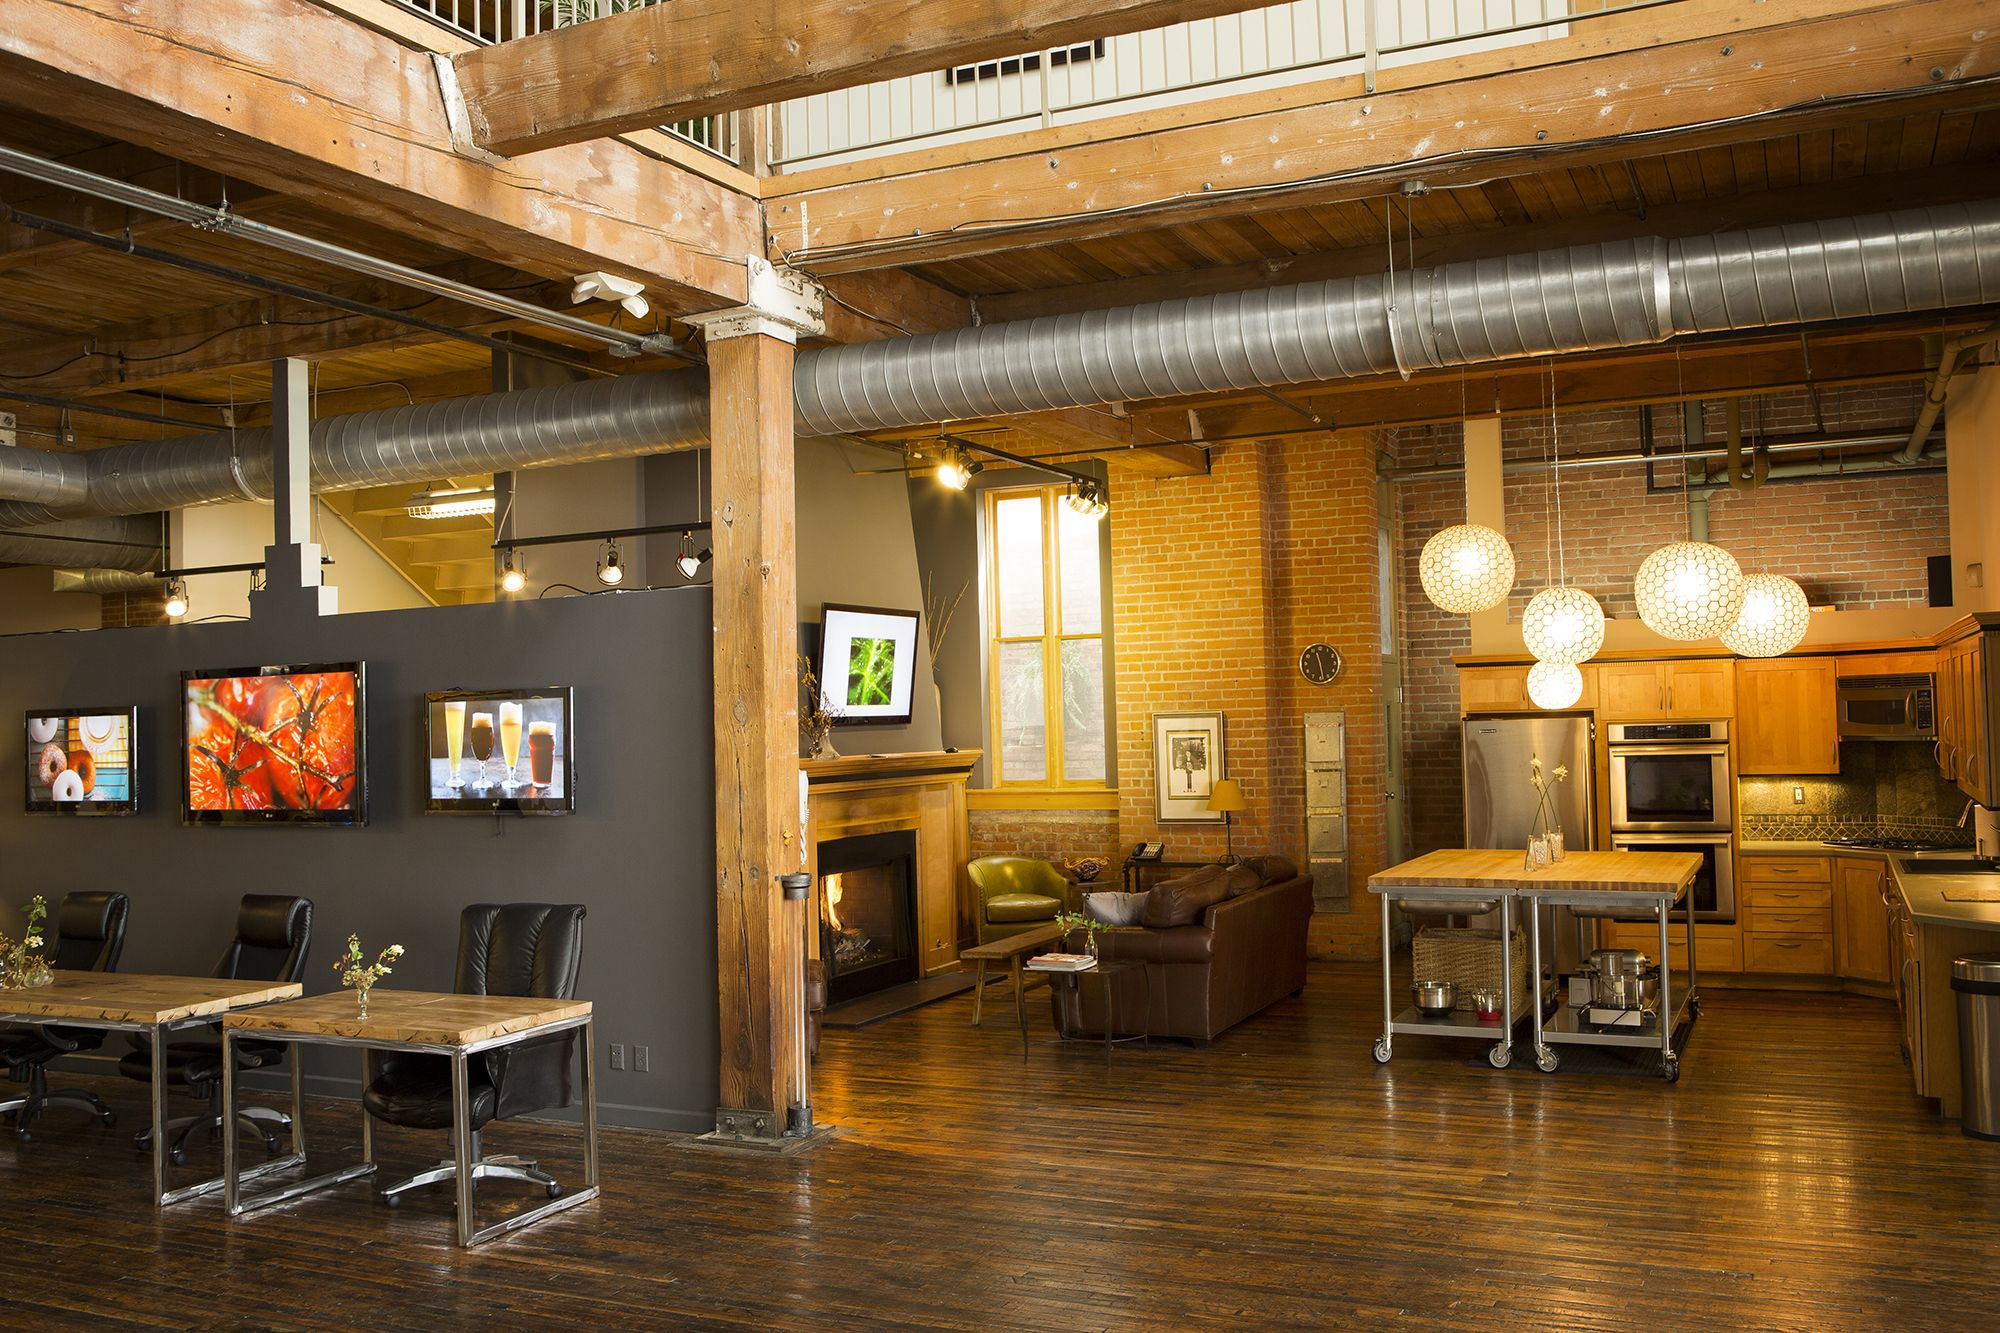 cool office space designs. Image Result For Creative Interior Office Space Design Cool Designs C